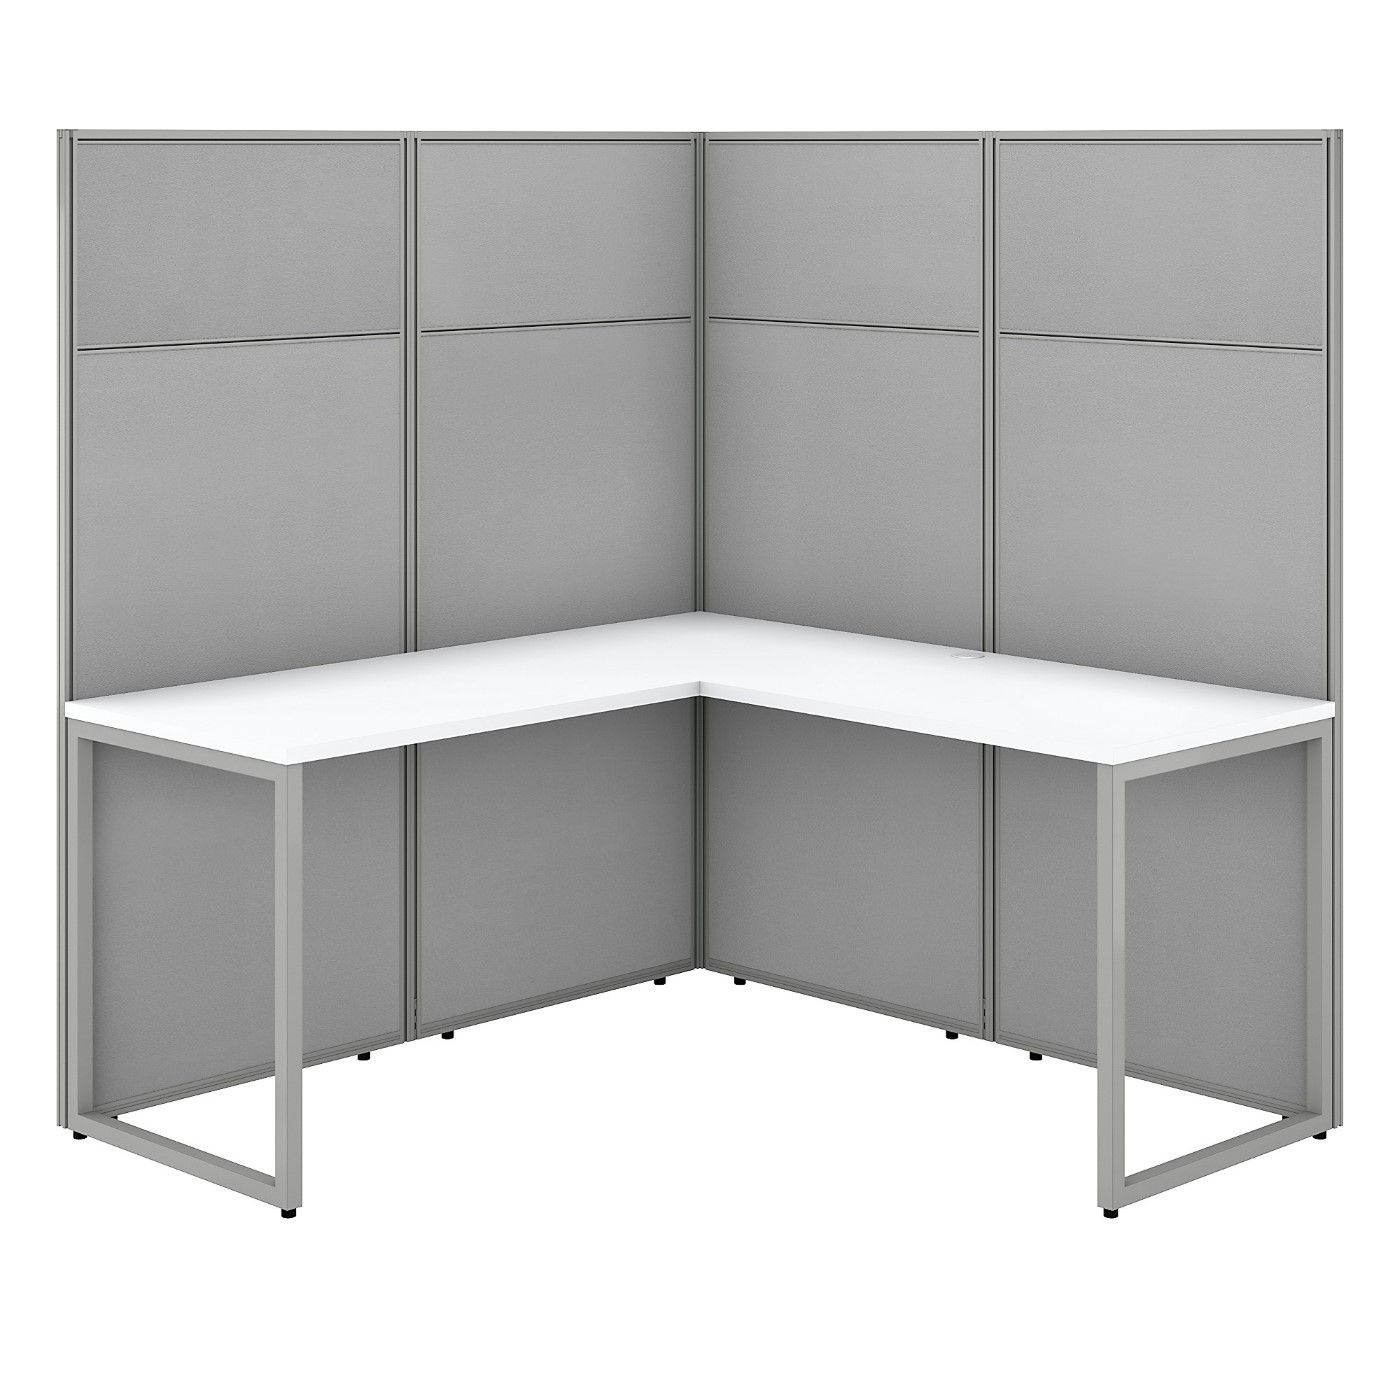 BUSH BUSINESS FURNITURE EASY OFFICE 60W L SHAPED CUBICLE DESK WORKSTATION WITH 66H PANELS. FREE SHIPPING SALE DEDUCT 10% MORE ENTER '10percent' IN COUPON CODE BOX WHILE CHECKING OUT. ENDS 5-31-20.